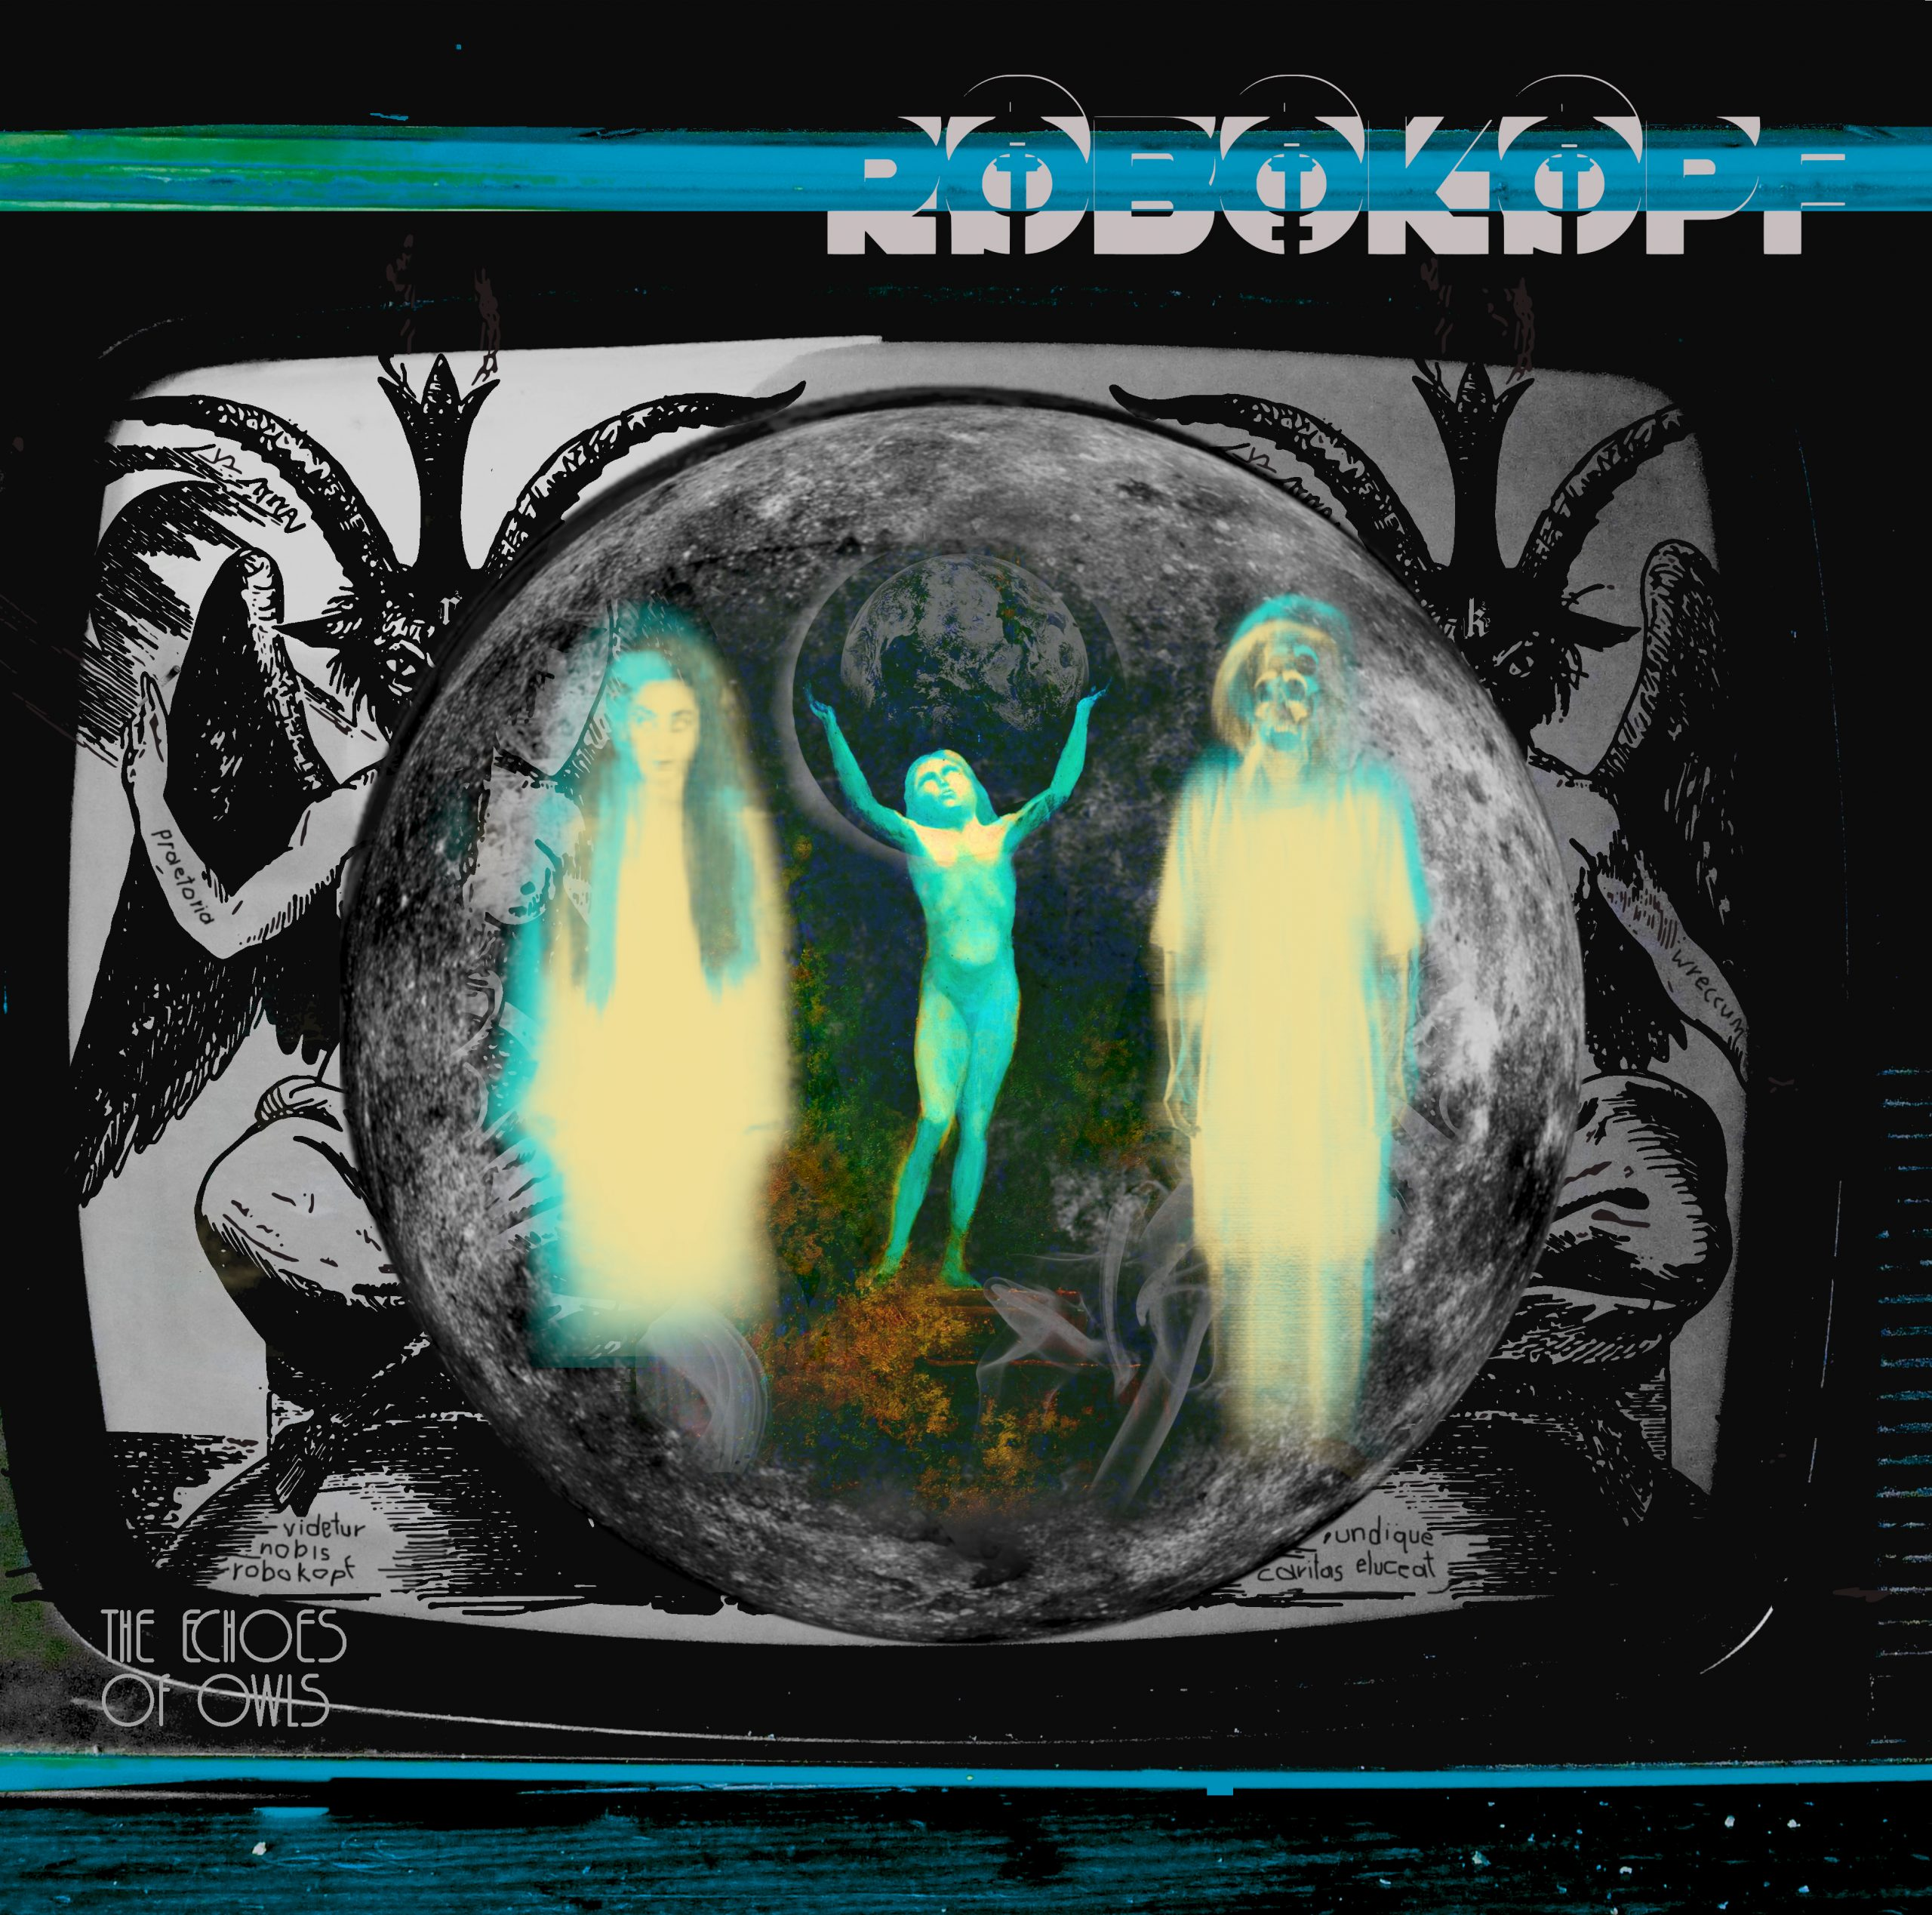 robokopf-the-echeos-of-owls-album-review